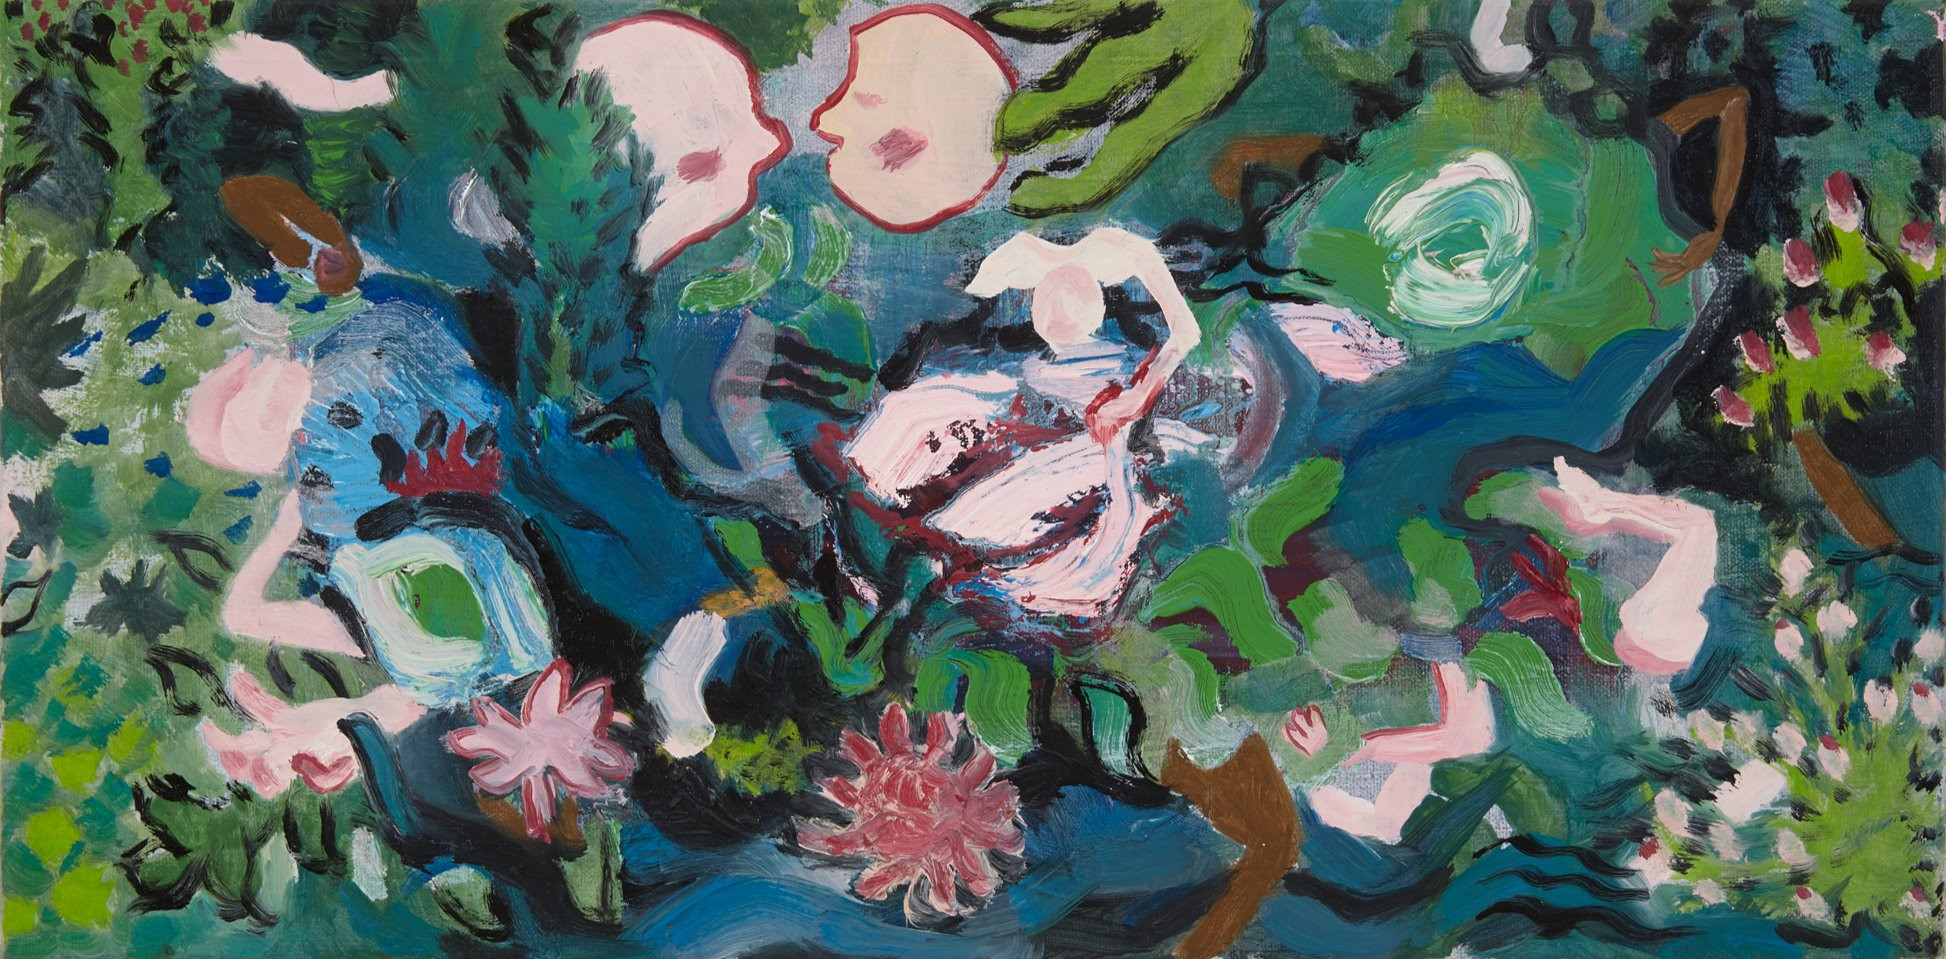 Garden night, oil on canvas, 2016